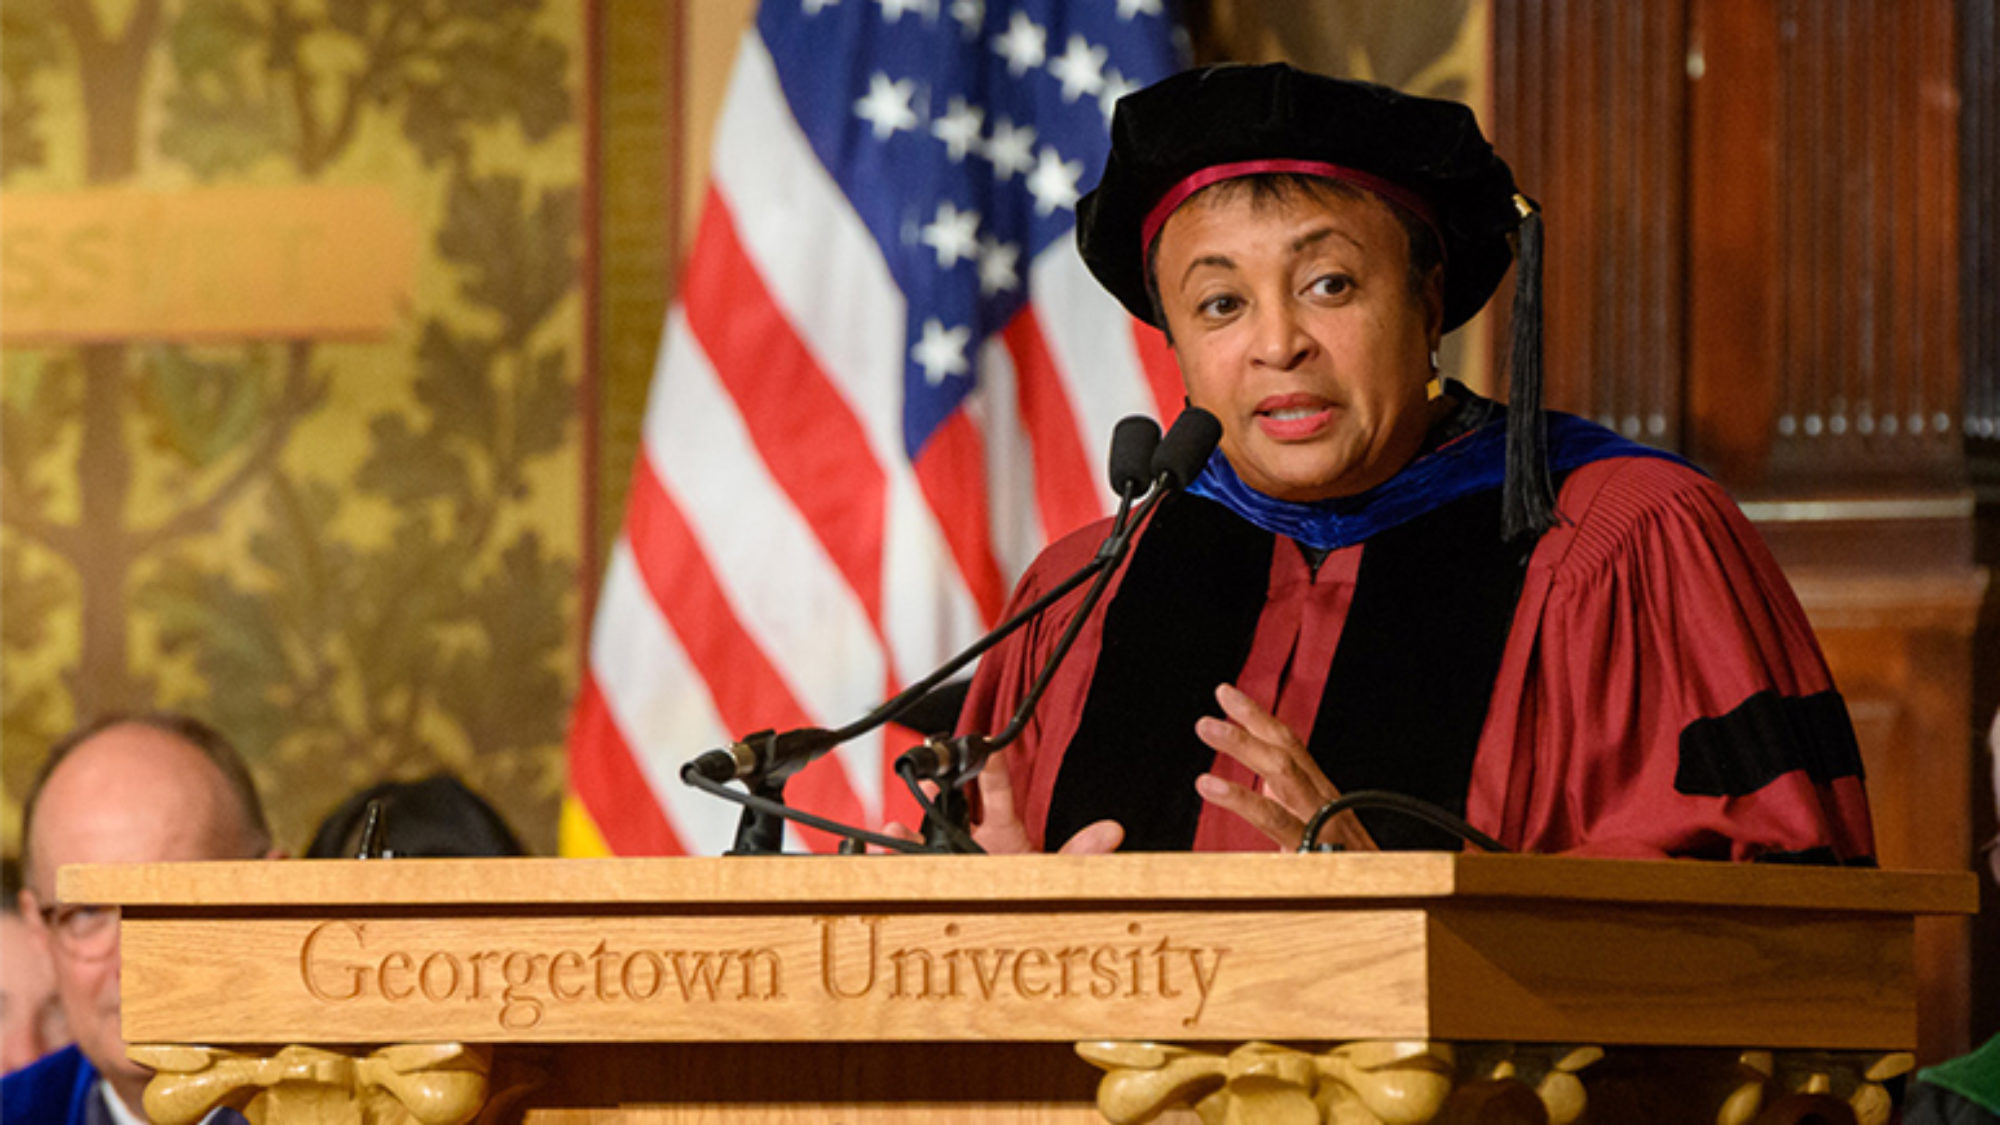 Carla Hayden at Georgetown University podium wearing cap and gown with American flag behind her